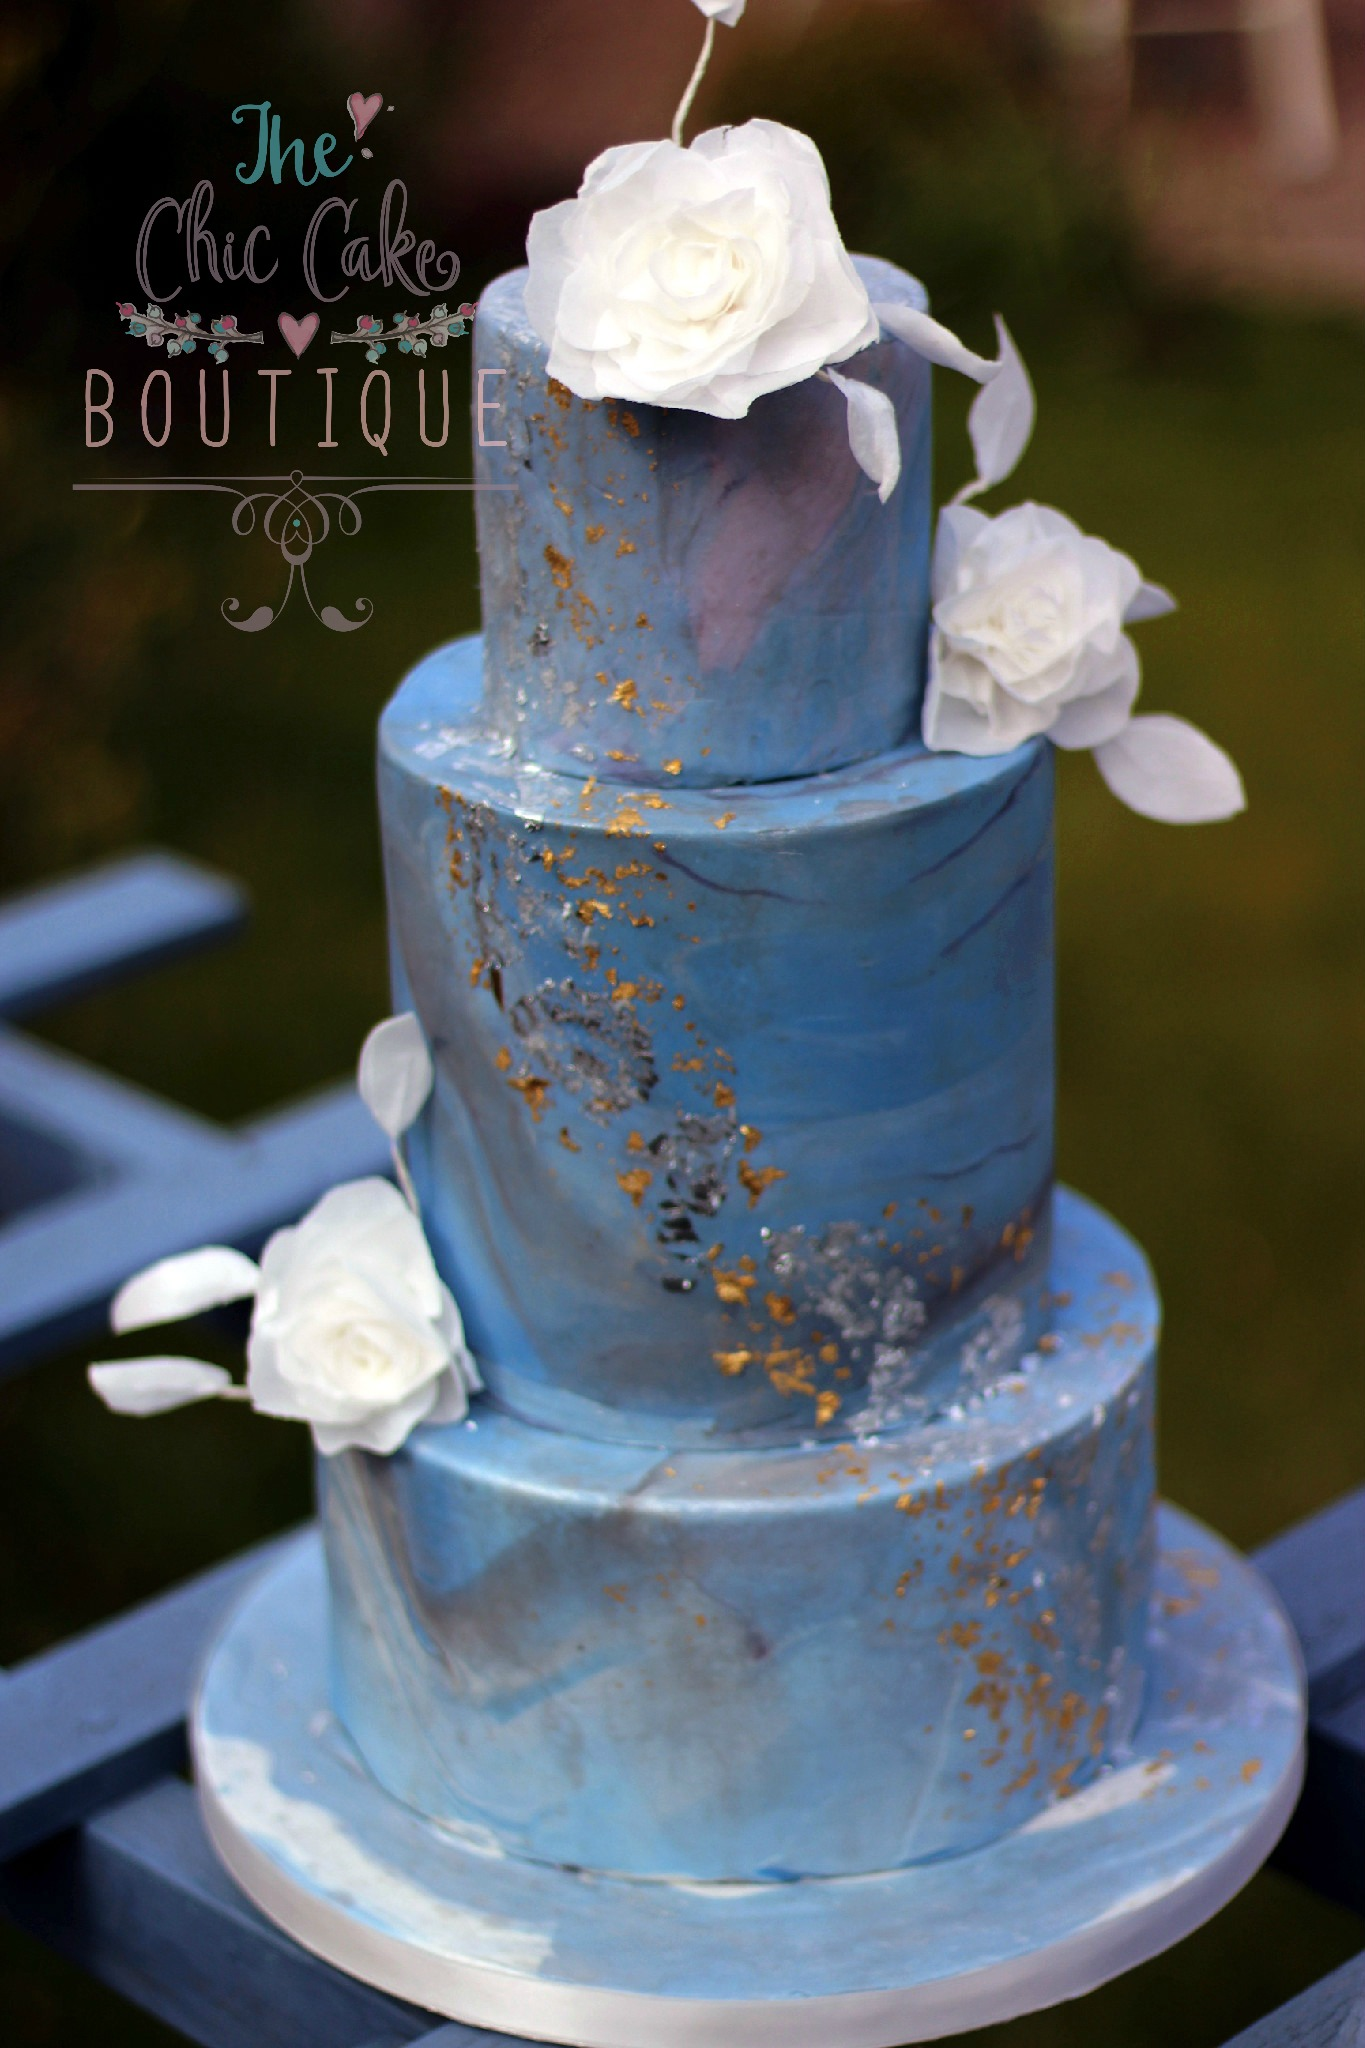 Blue marble wedding cake with glod leaf and wafer paper flowers